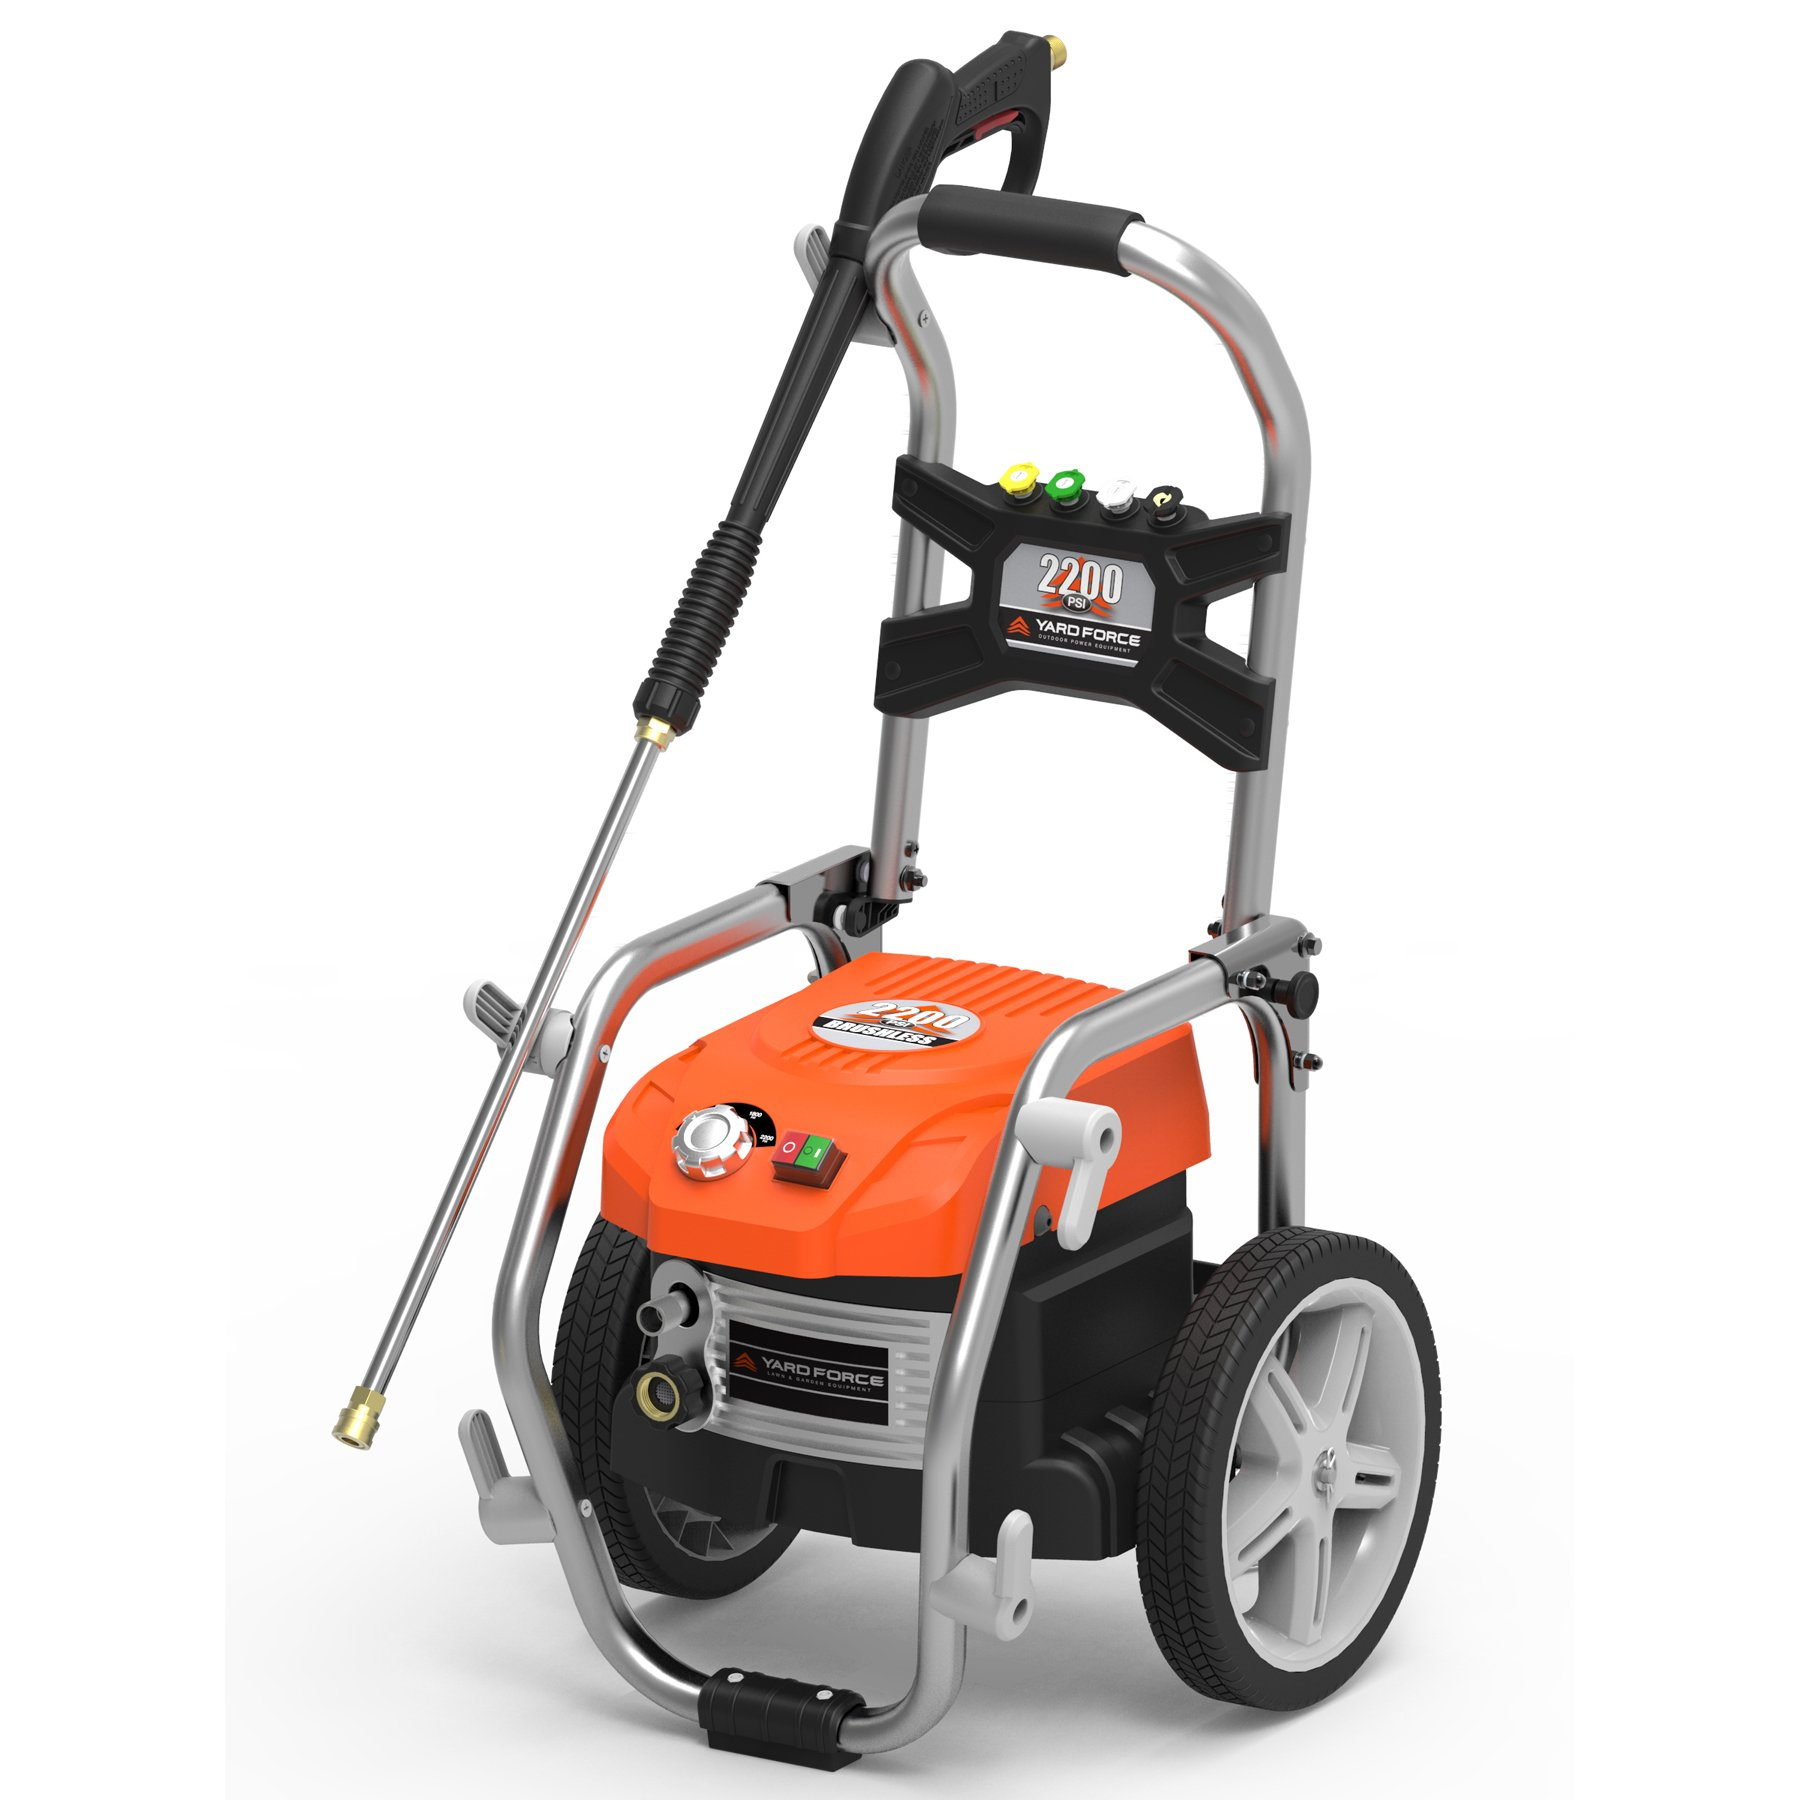 Yard Force YF2200BL Electric Brushless Pressure Washer 2200 PSI